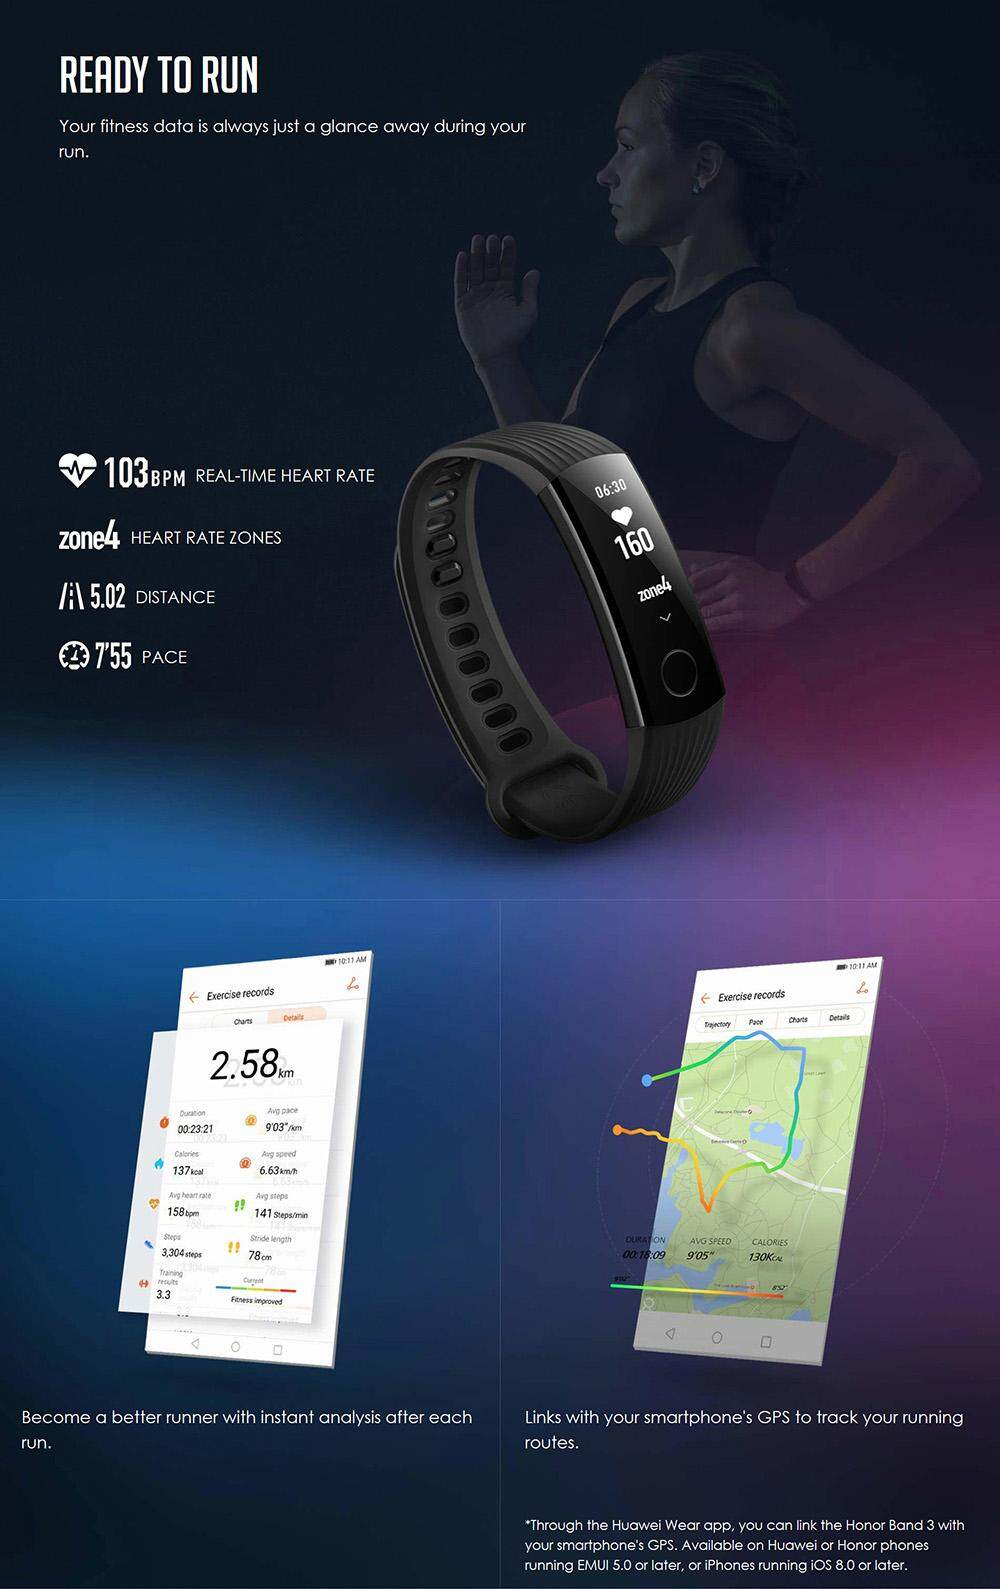 HUAWEI Honor Band 3 Smartband Heart Rate Monitor Calories Consumption Pedometer